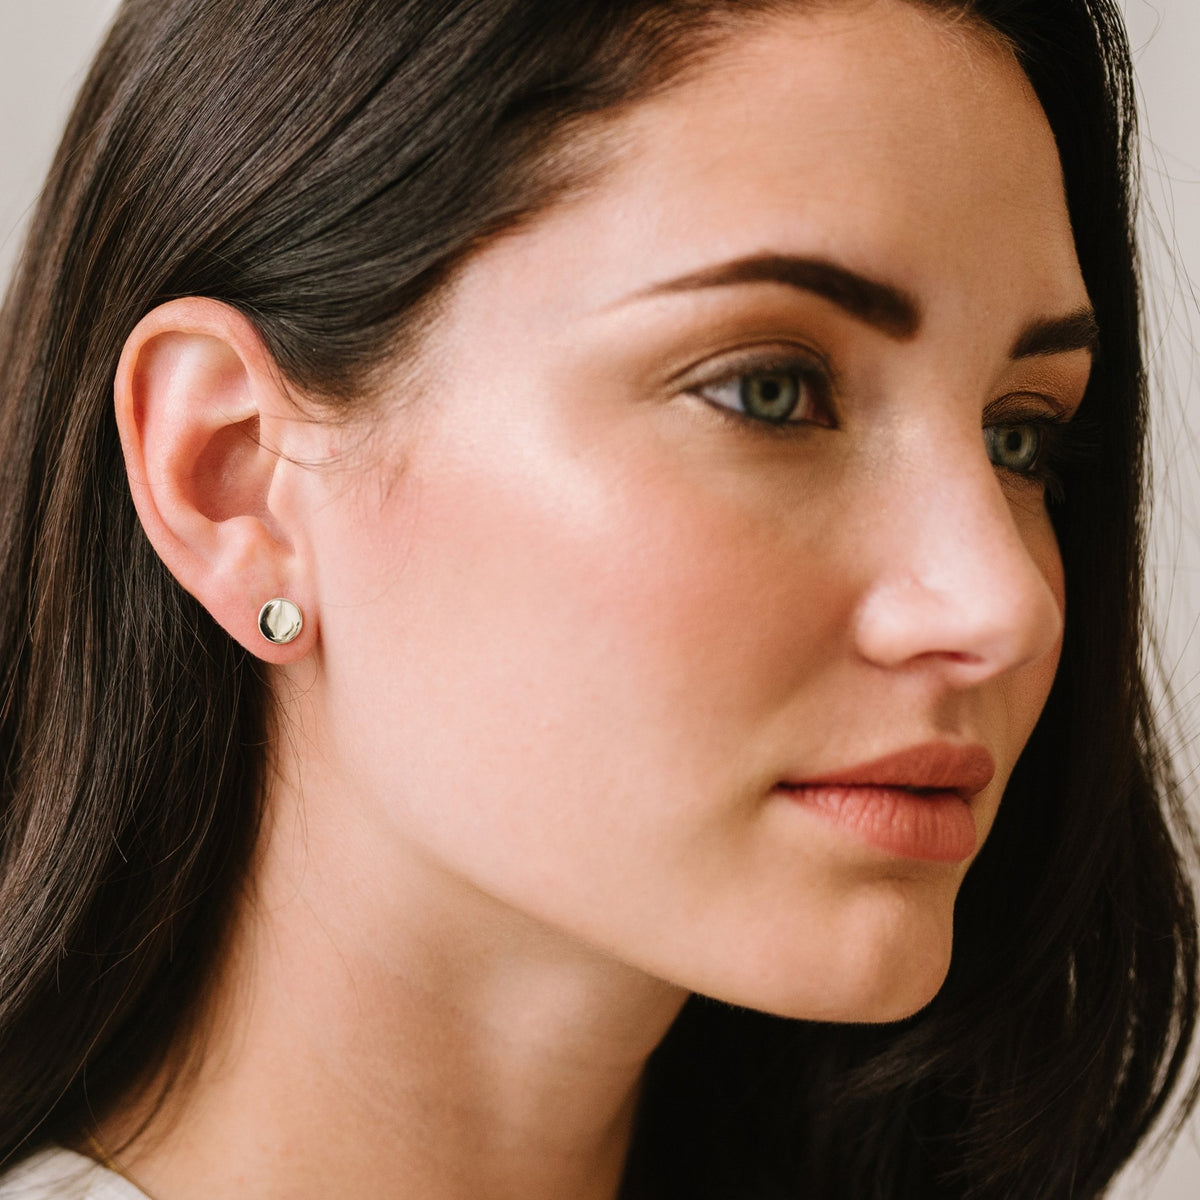 MINI POISE CIRCLE STUDS - SILVER - SO PRETTY CARA COTTER